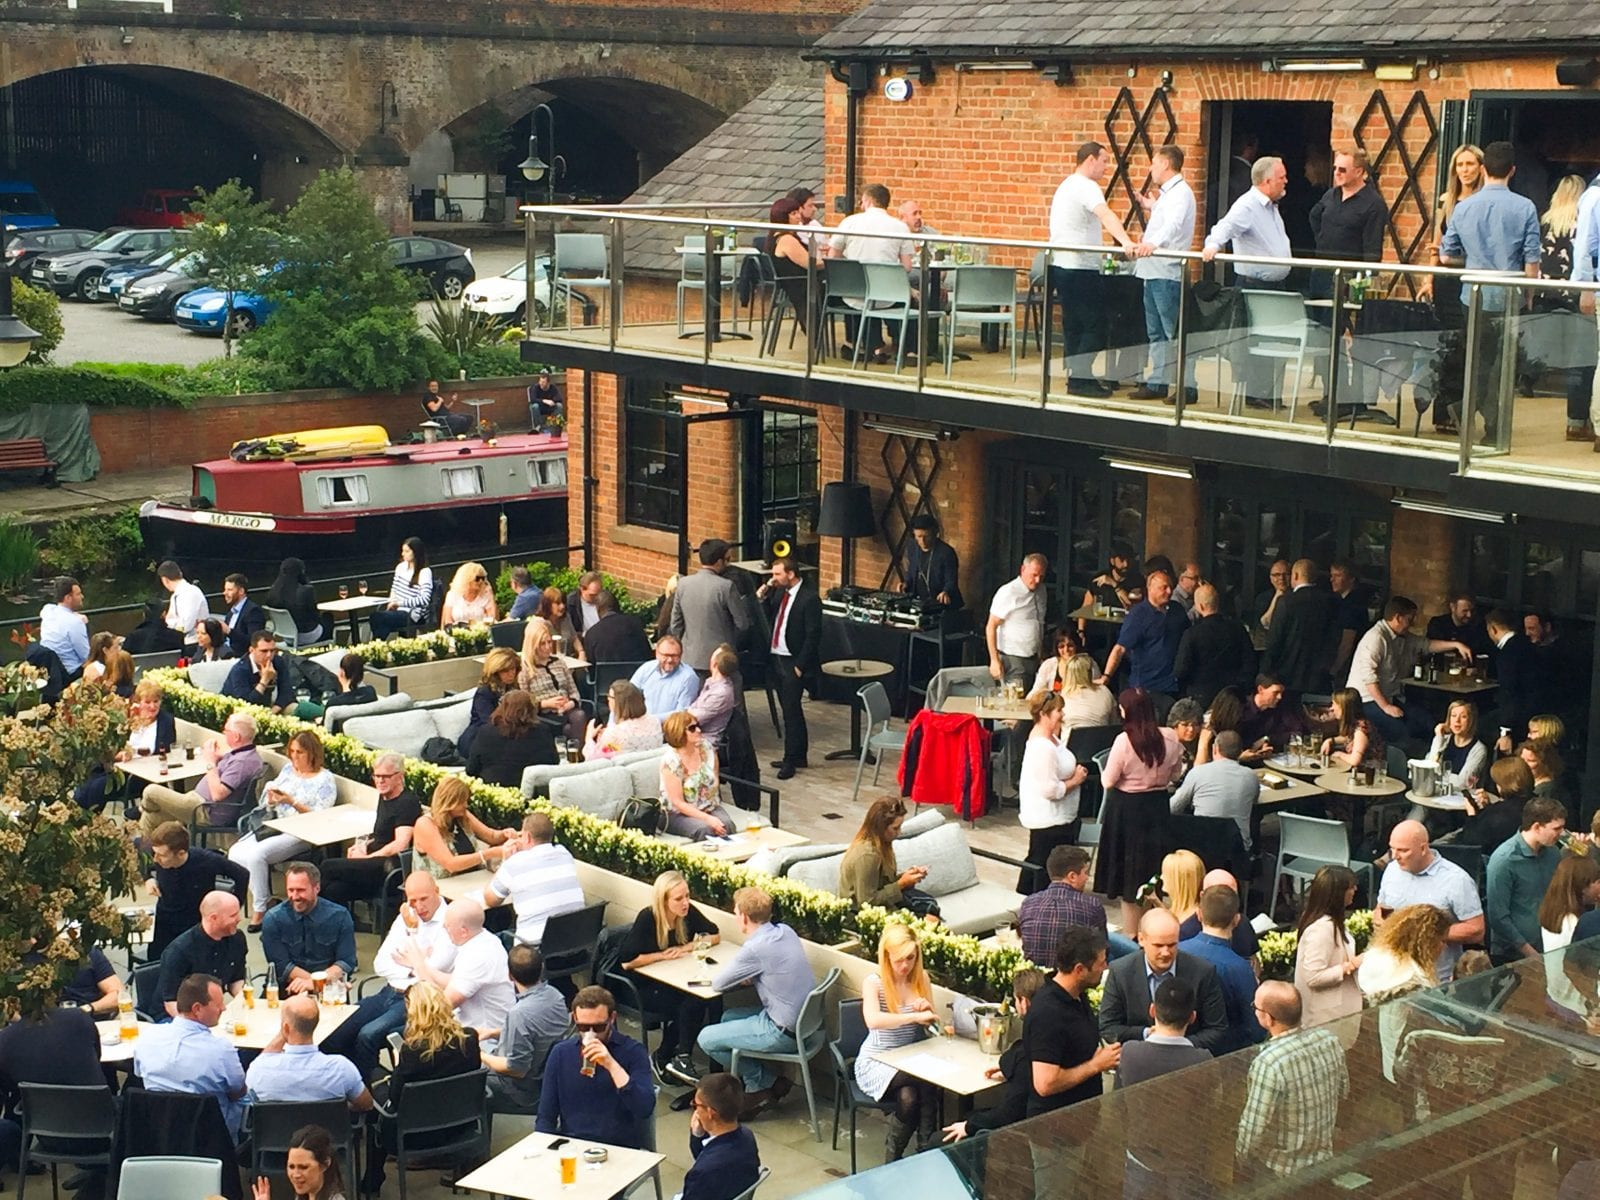 Manchester's most sunshine-soaked beer gardens to visit this weekend, The Manc